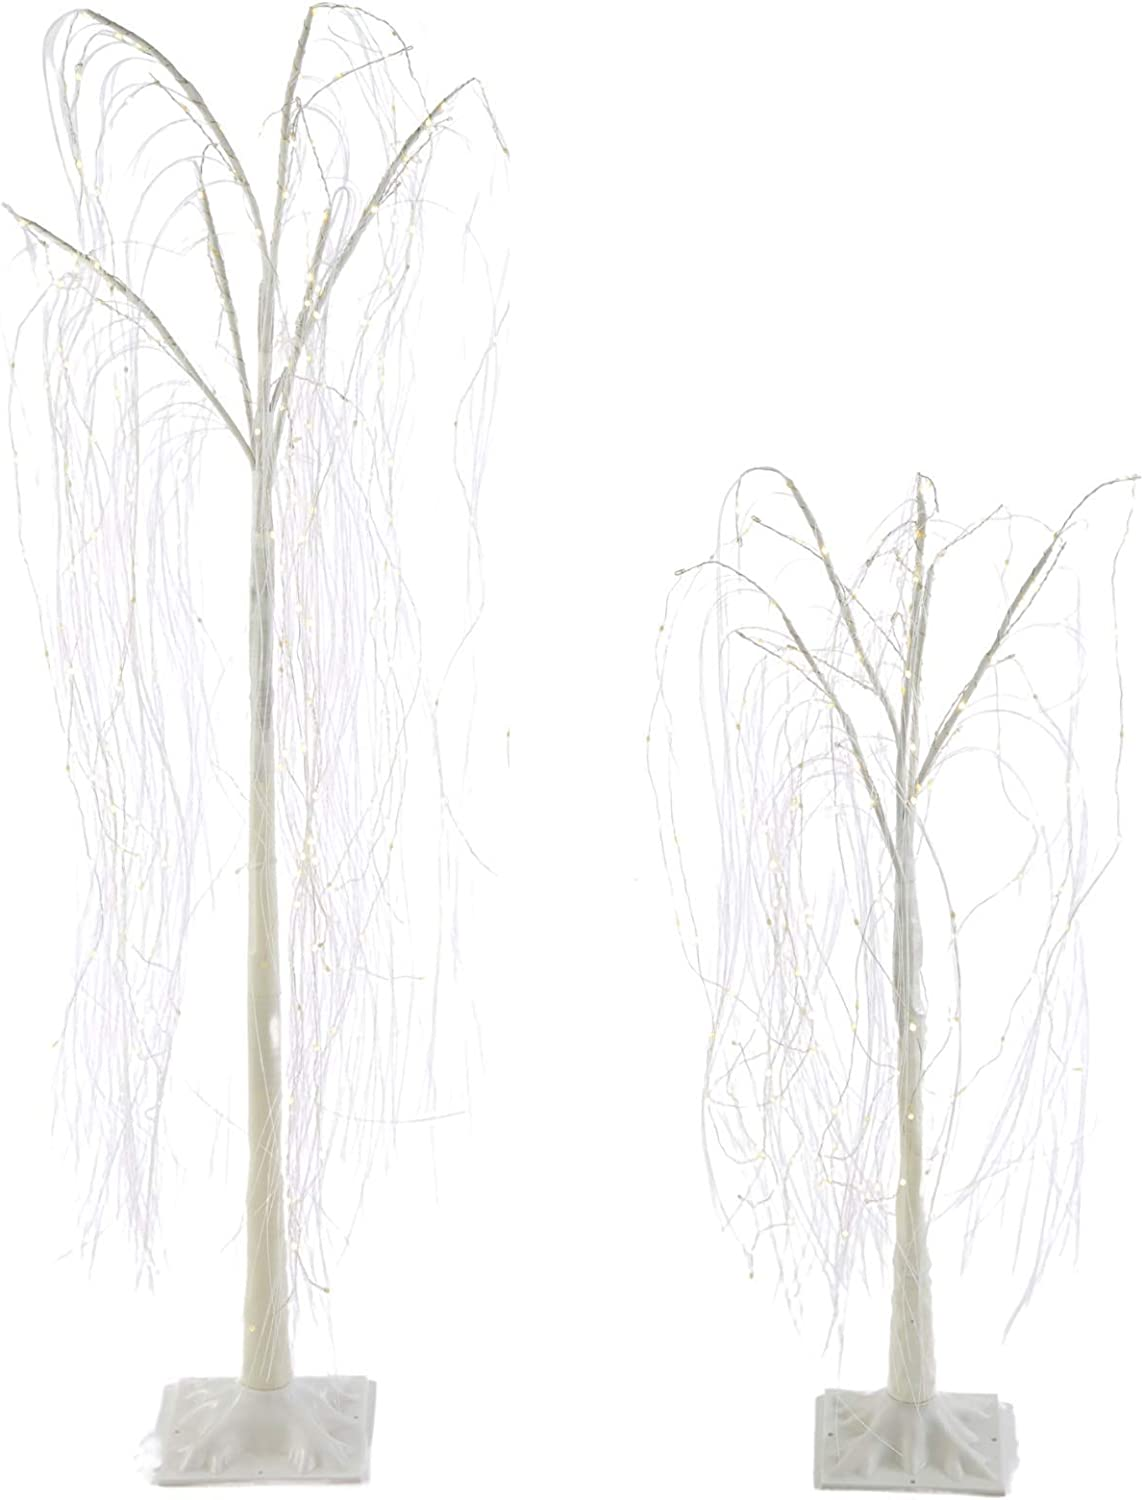 NOMA Pre-Lit Light Up Willow Tree Set | Outdoor Christmas Lawn Decoration | Indoor/Outdoor | 2-Pack